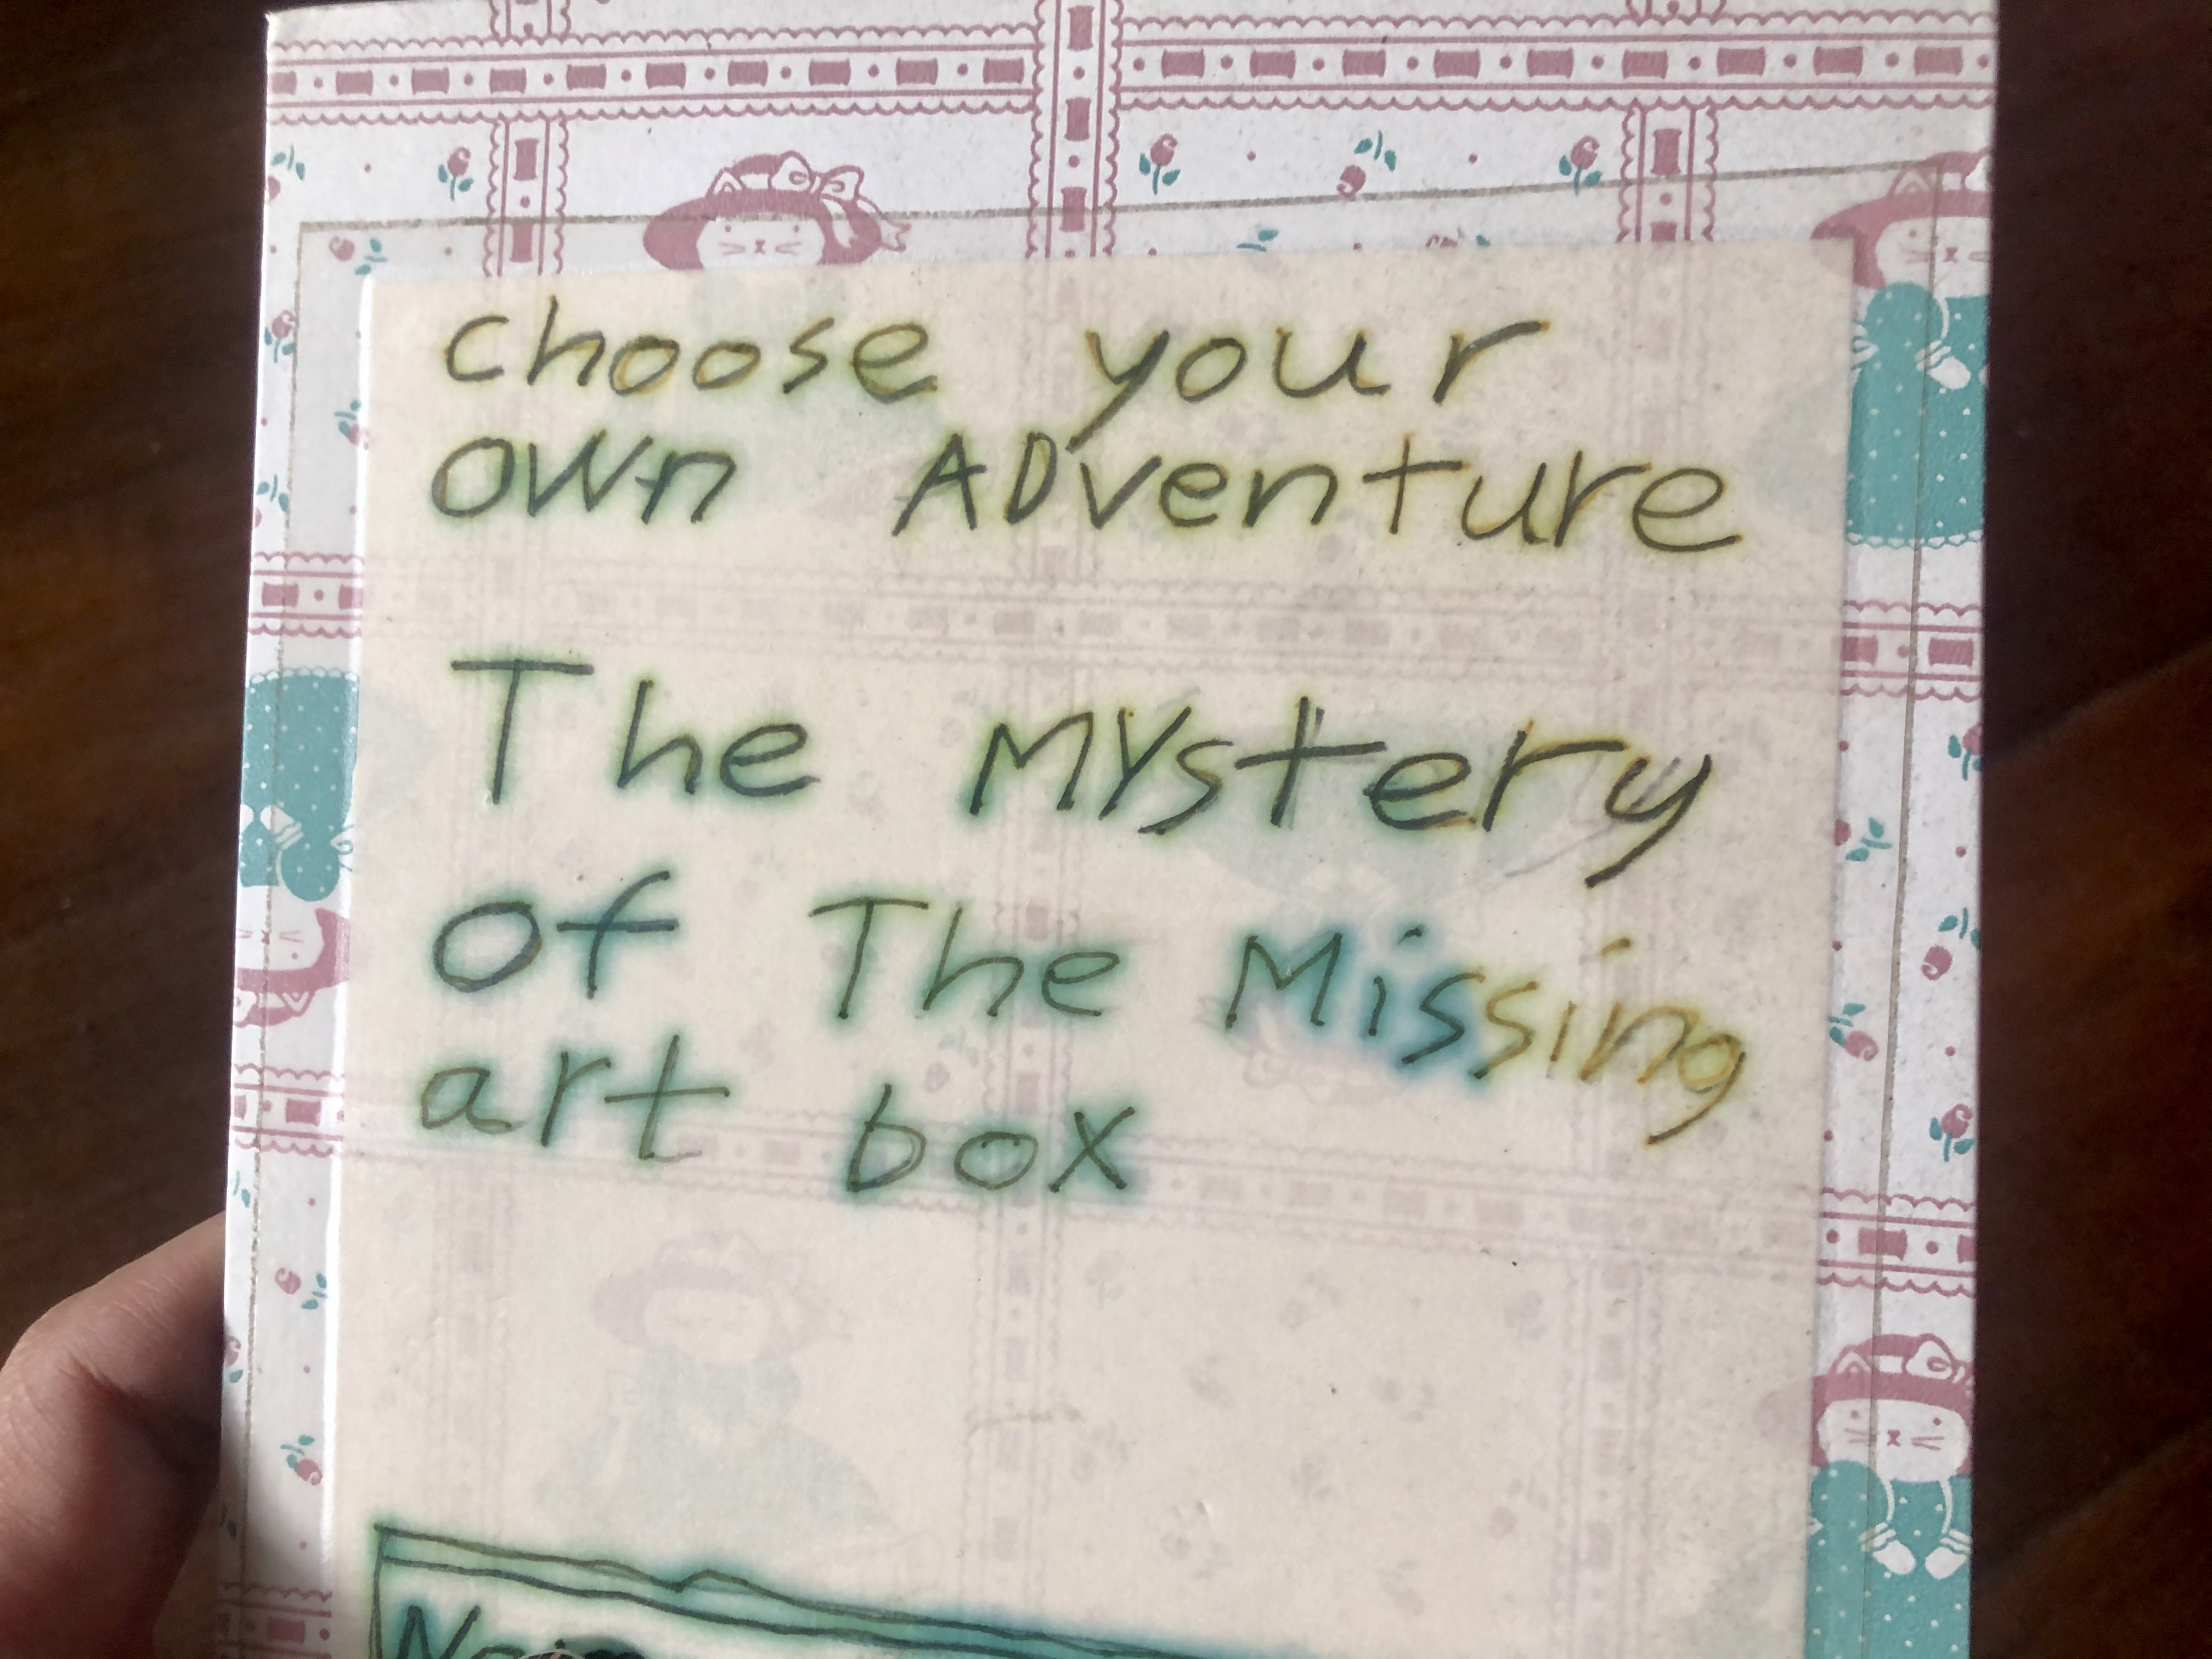 Hand-made choose-your-own-adventure book called  The Mystery of the Missing Art Box